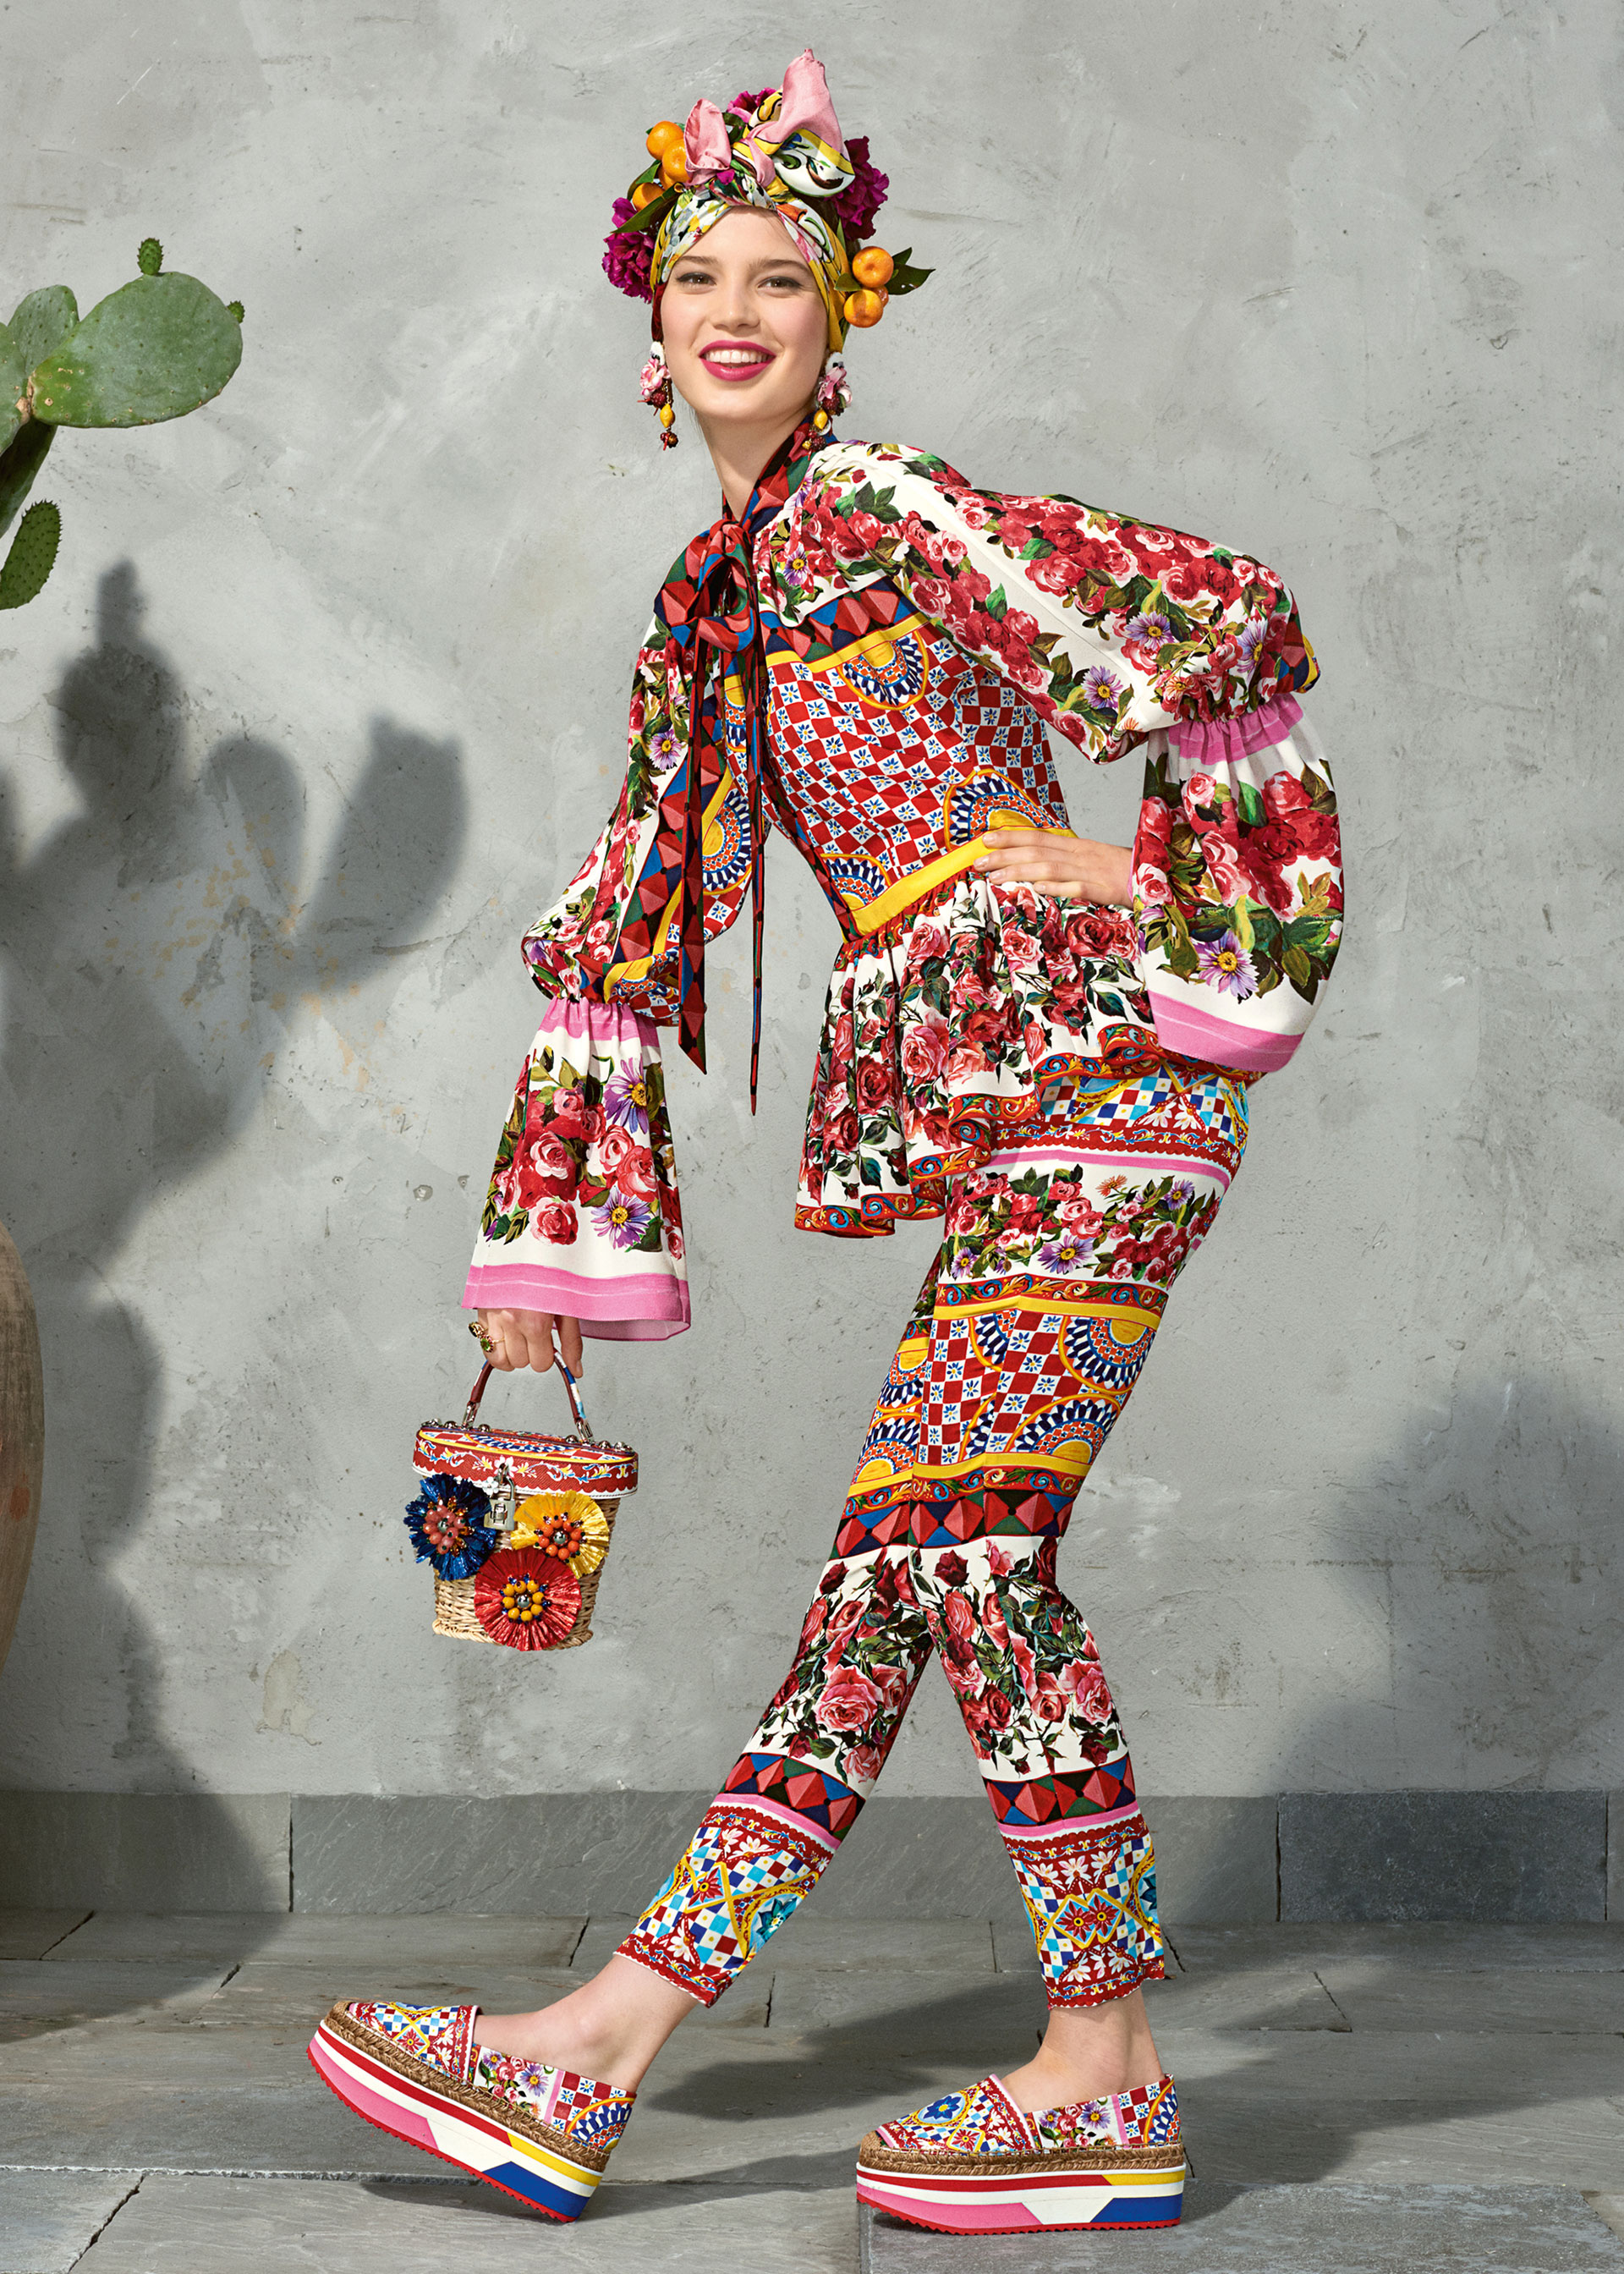 dolce and gabbana summer 2017 woman collection 97 - Dolce & Gabbana/Spring Summer 2017 Collection/ Mambo